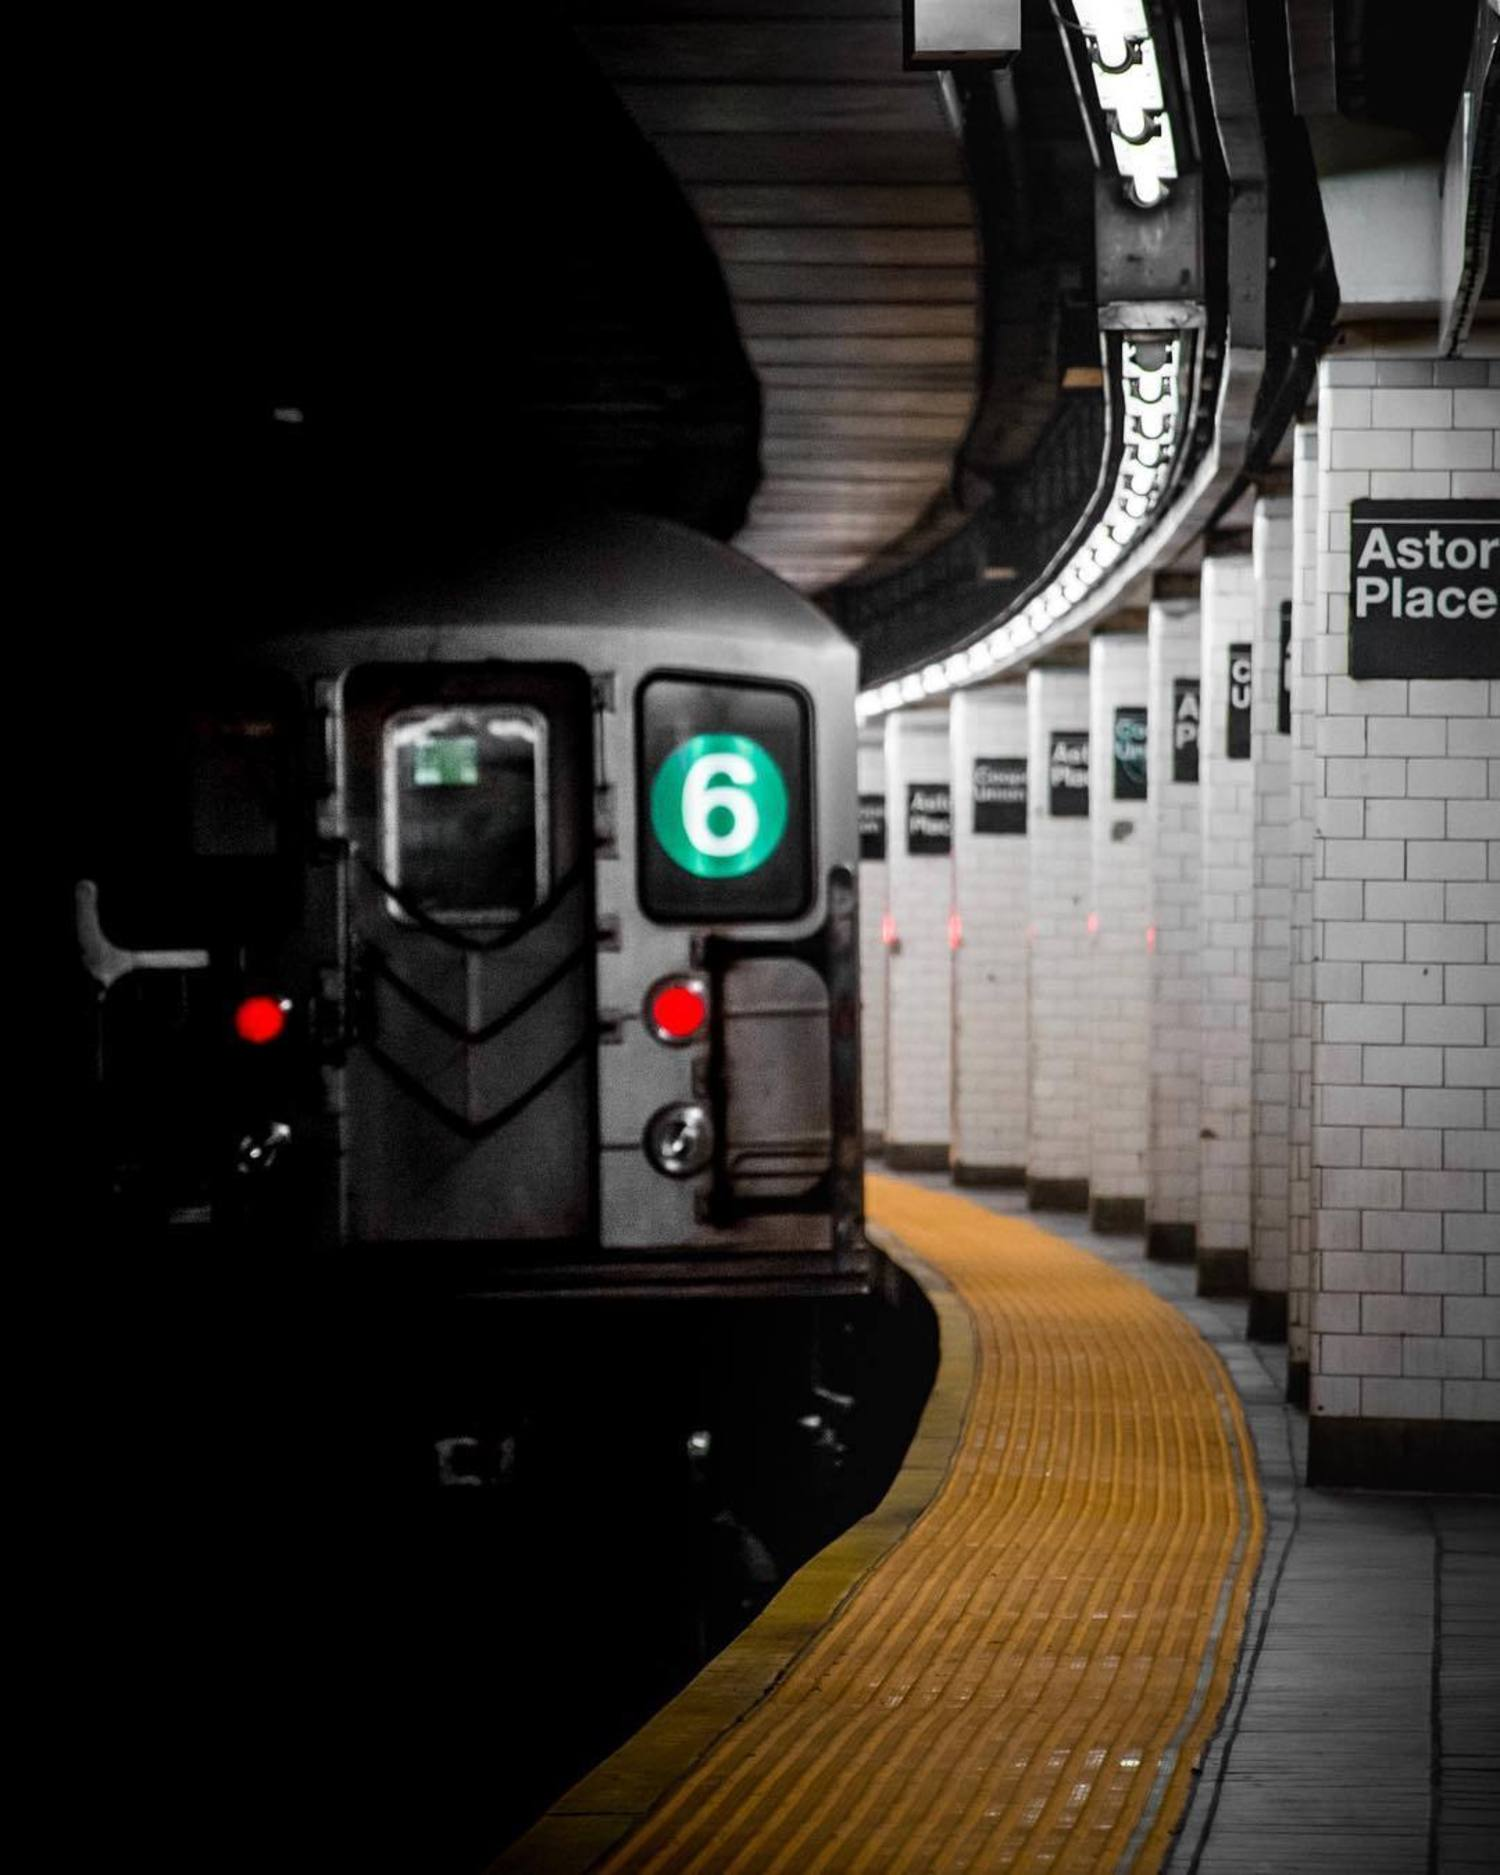 Astor Place Station, East Village, Manhattan